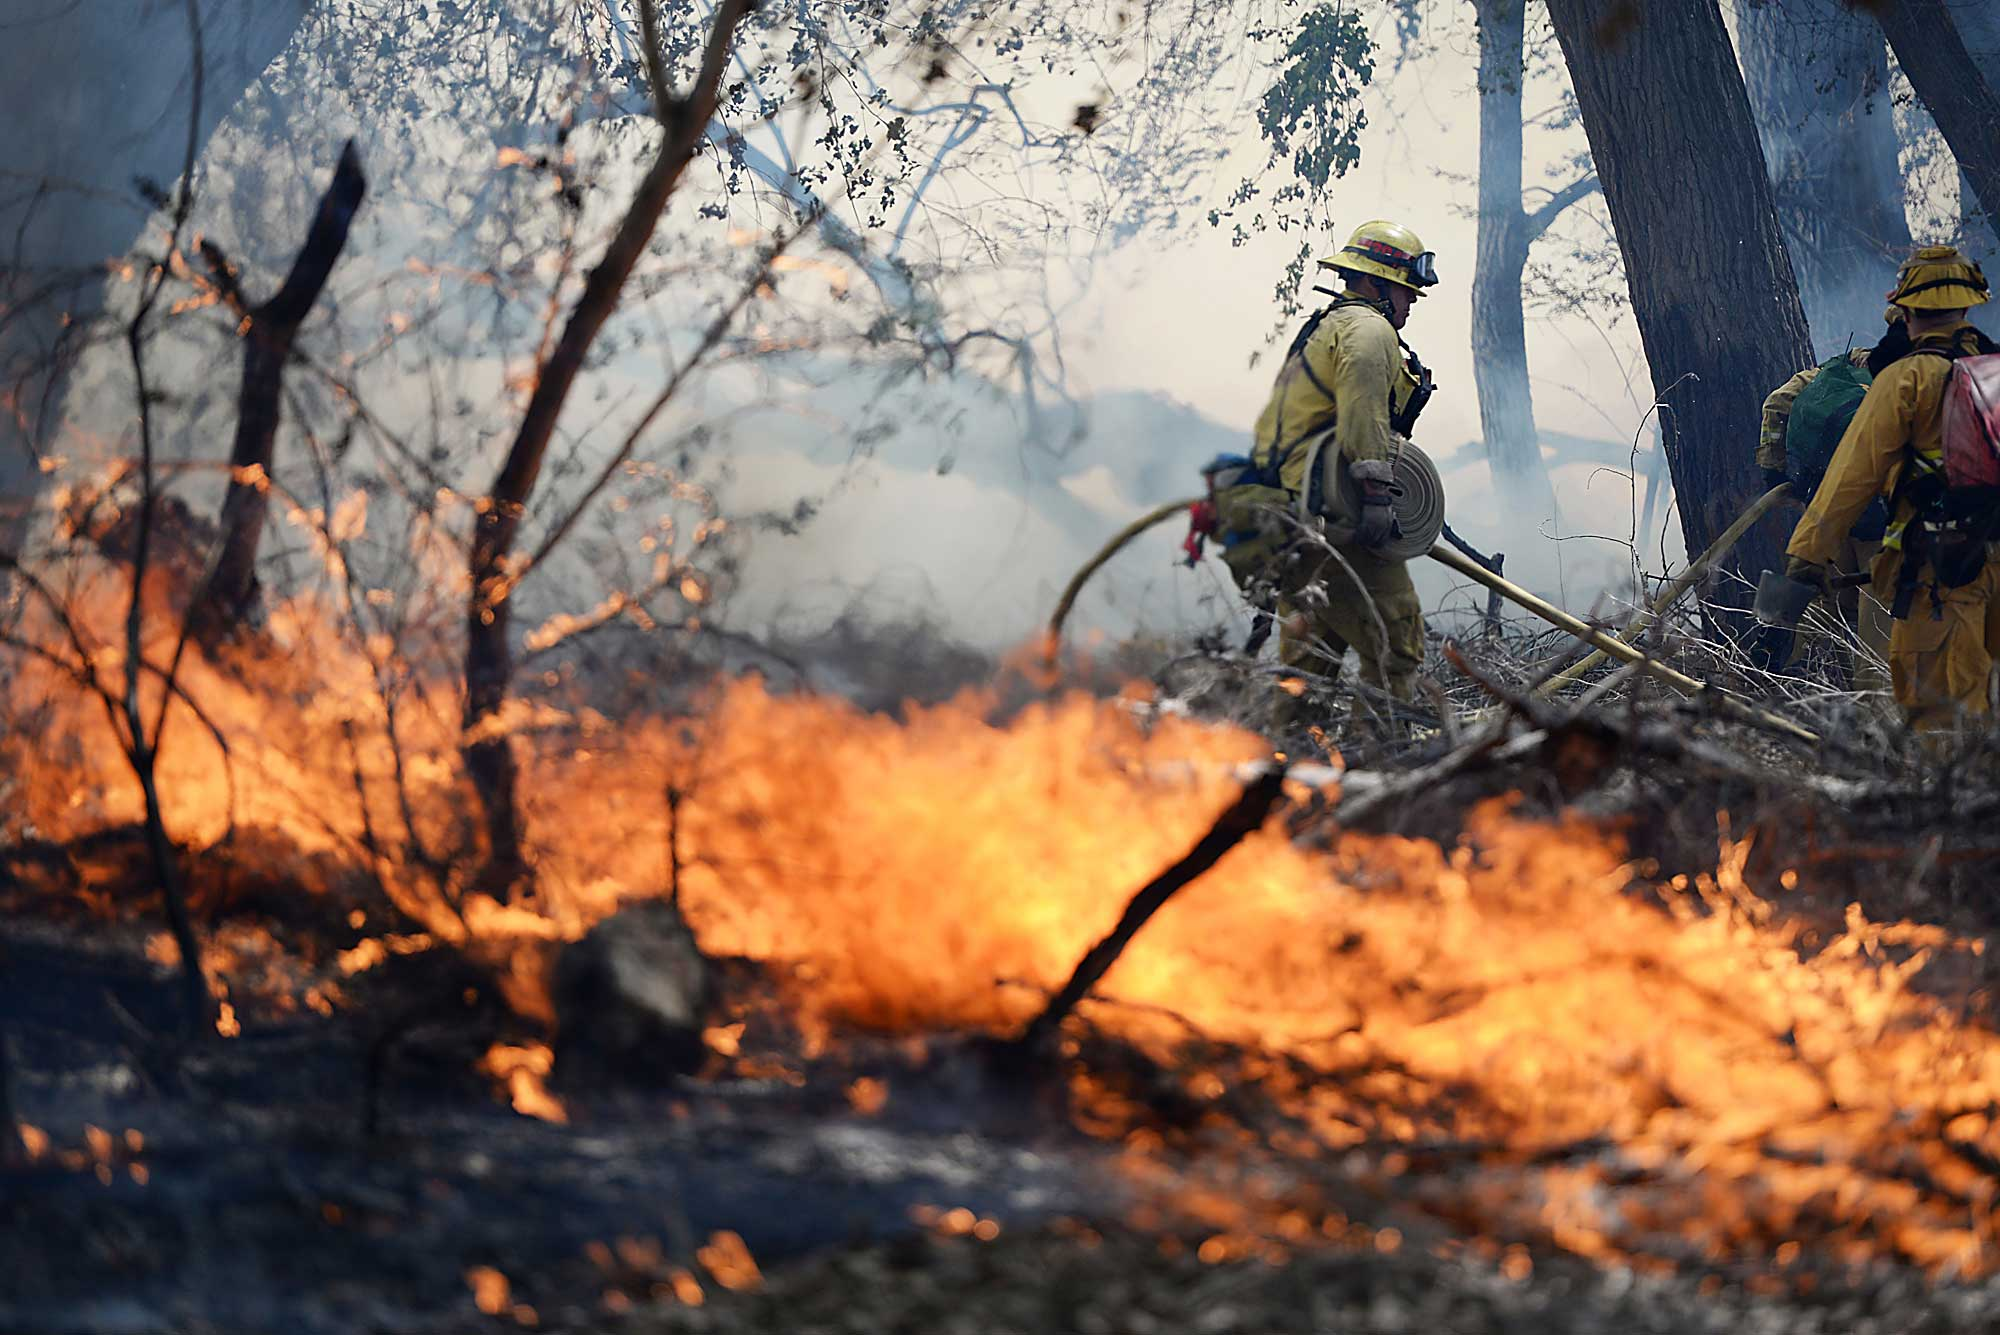 Firefighters battle a wildfire in The Mojave Narrows Regional Park in Victorville Calif., March 31, 2015.